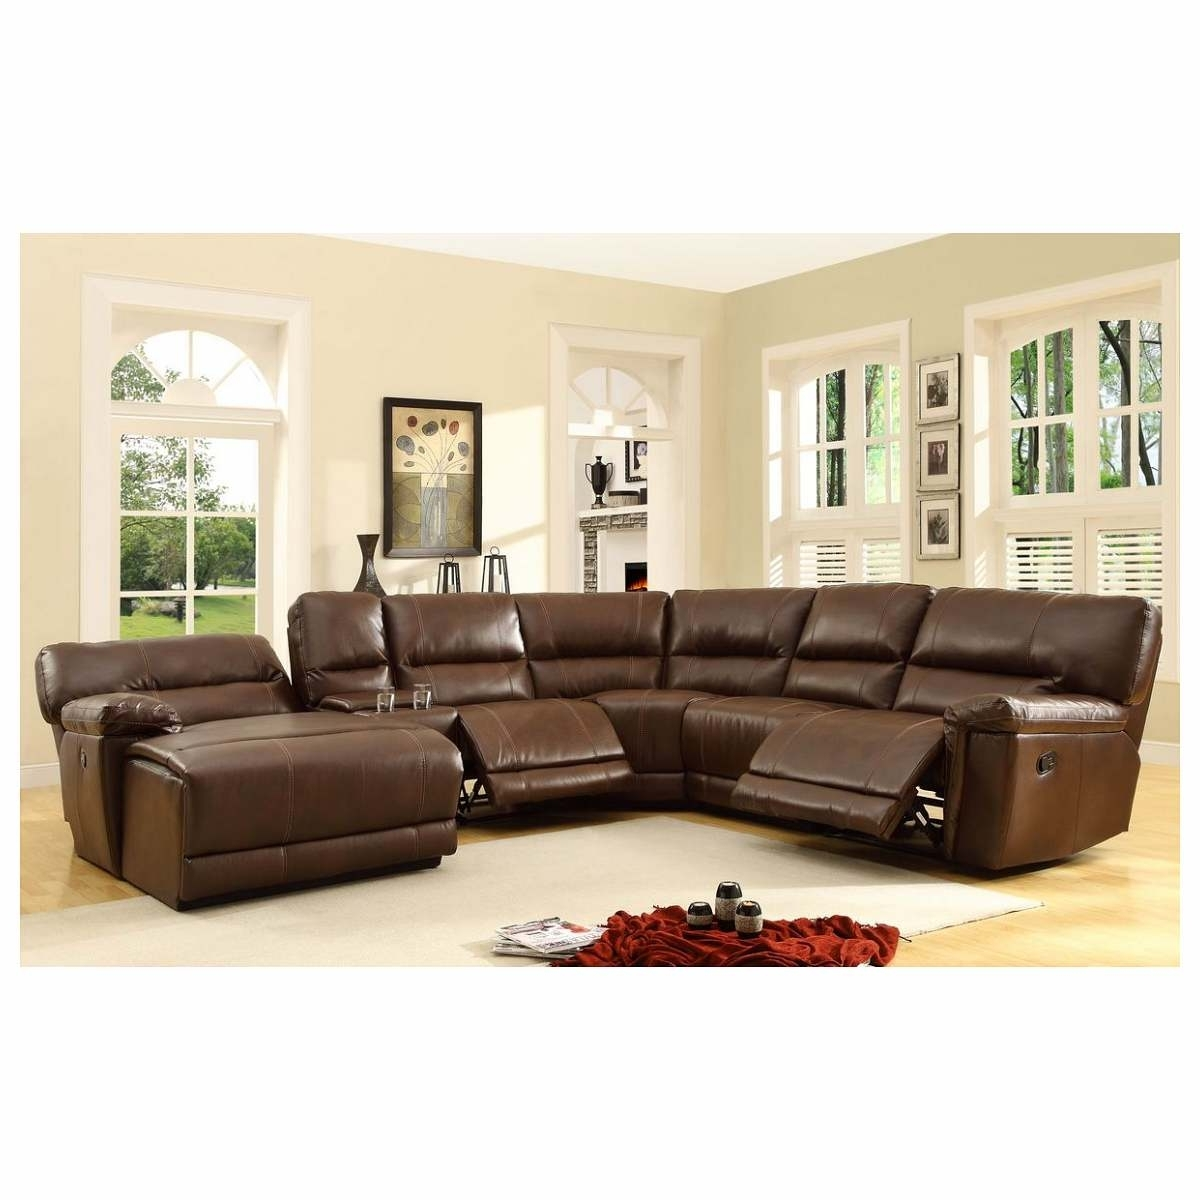 Trendy 6 Pc Blythe Collection Brown Bonded Leather Match Upholstered Within 6 Piece Leather Sectional Sofas (View 20 of 20)